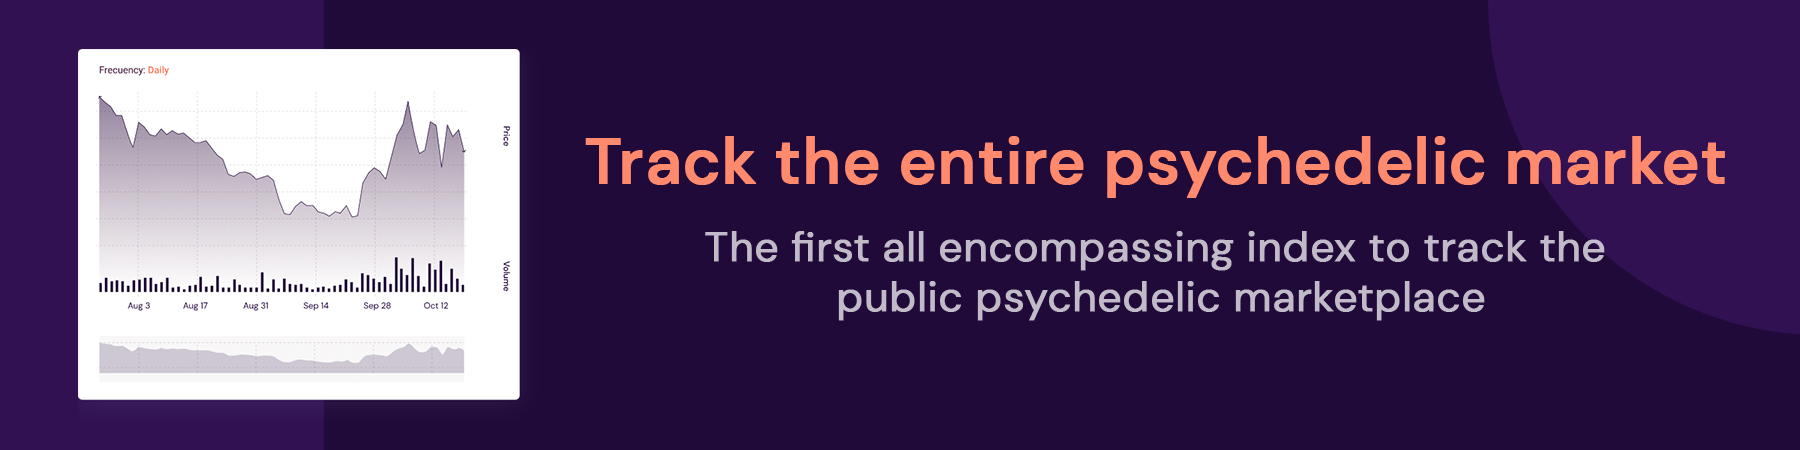 Track the entire psychedelic market